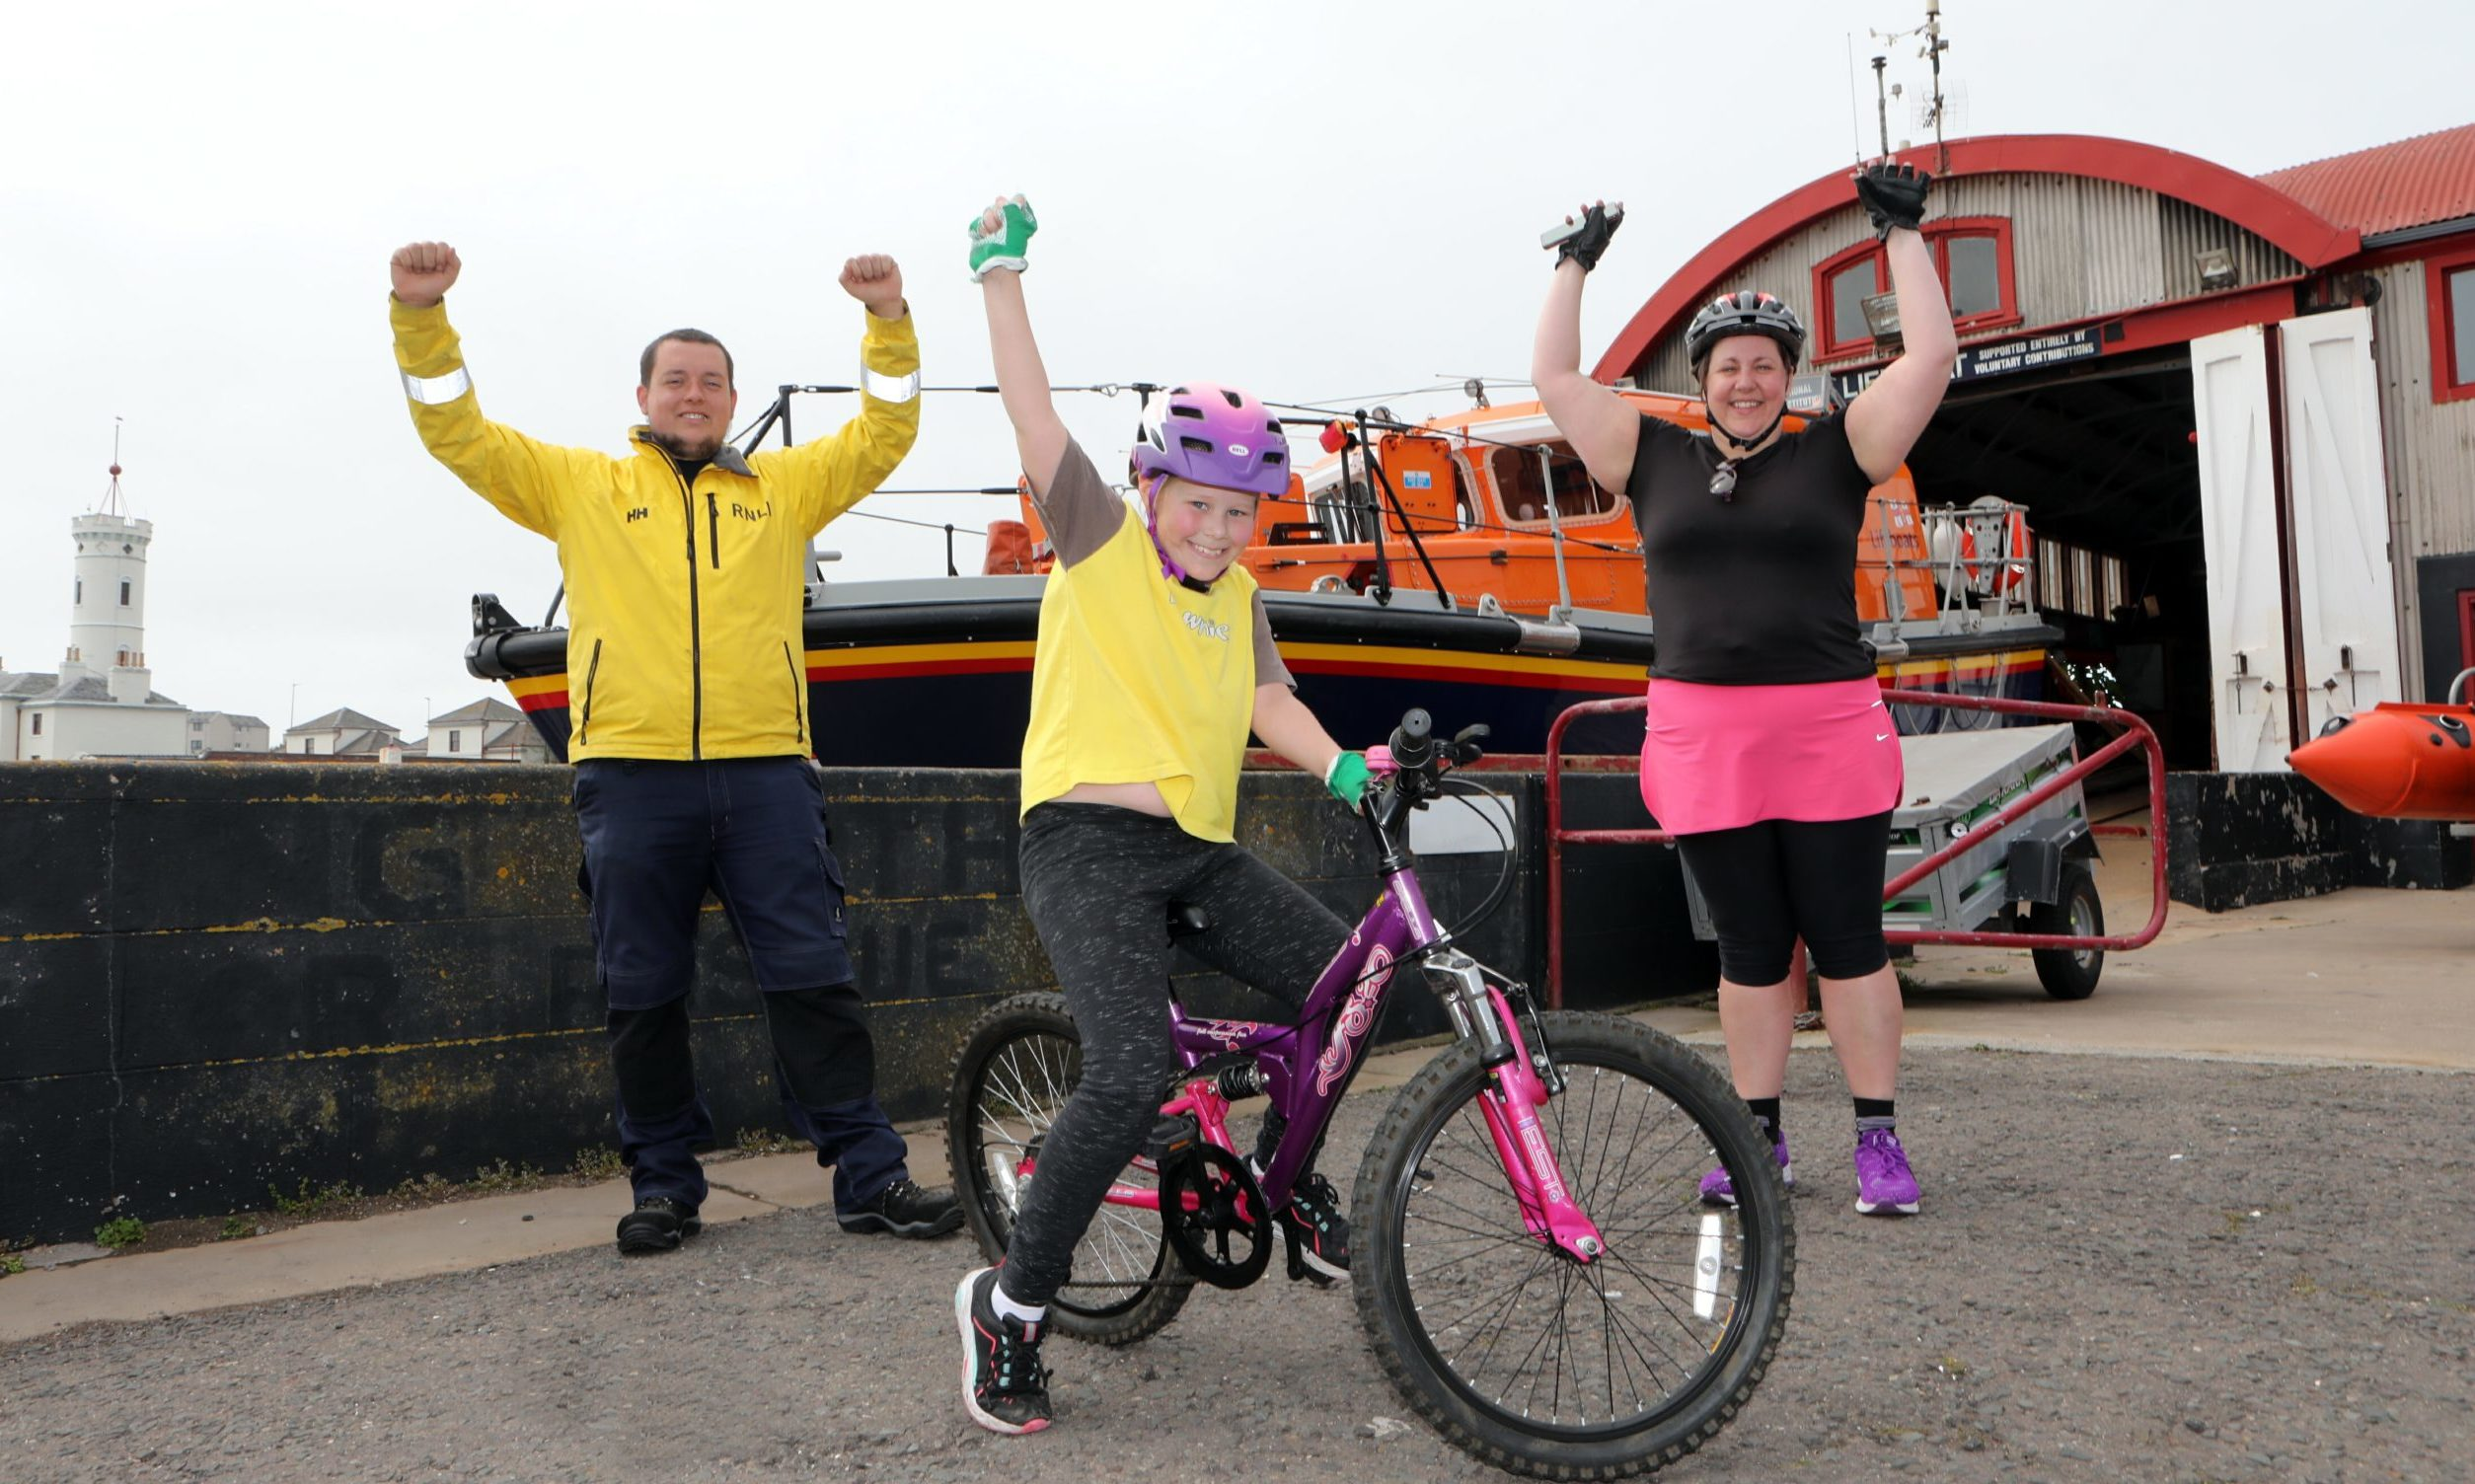 Kaylee celebrates at Arbroath lifeboat station with mum Dawn and Sam Clow, Arbroath RNLI coxswain/mechanic.